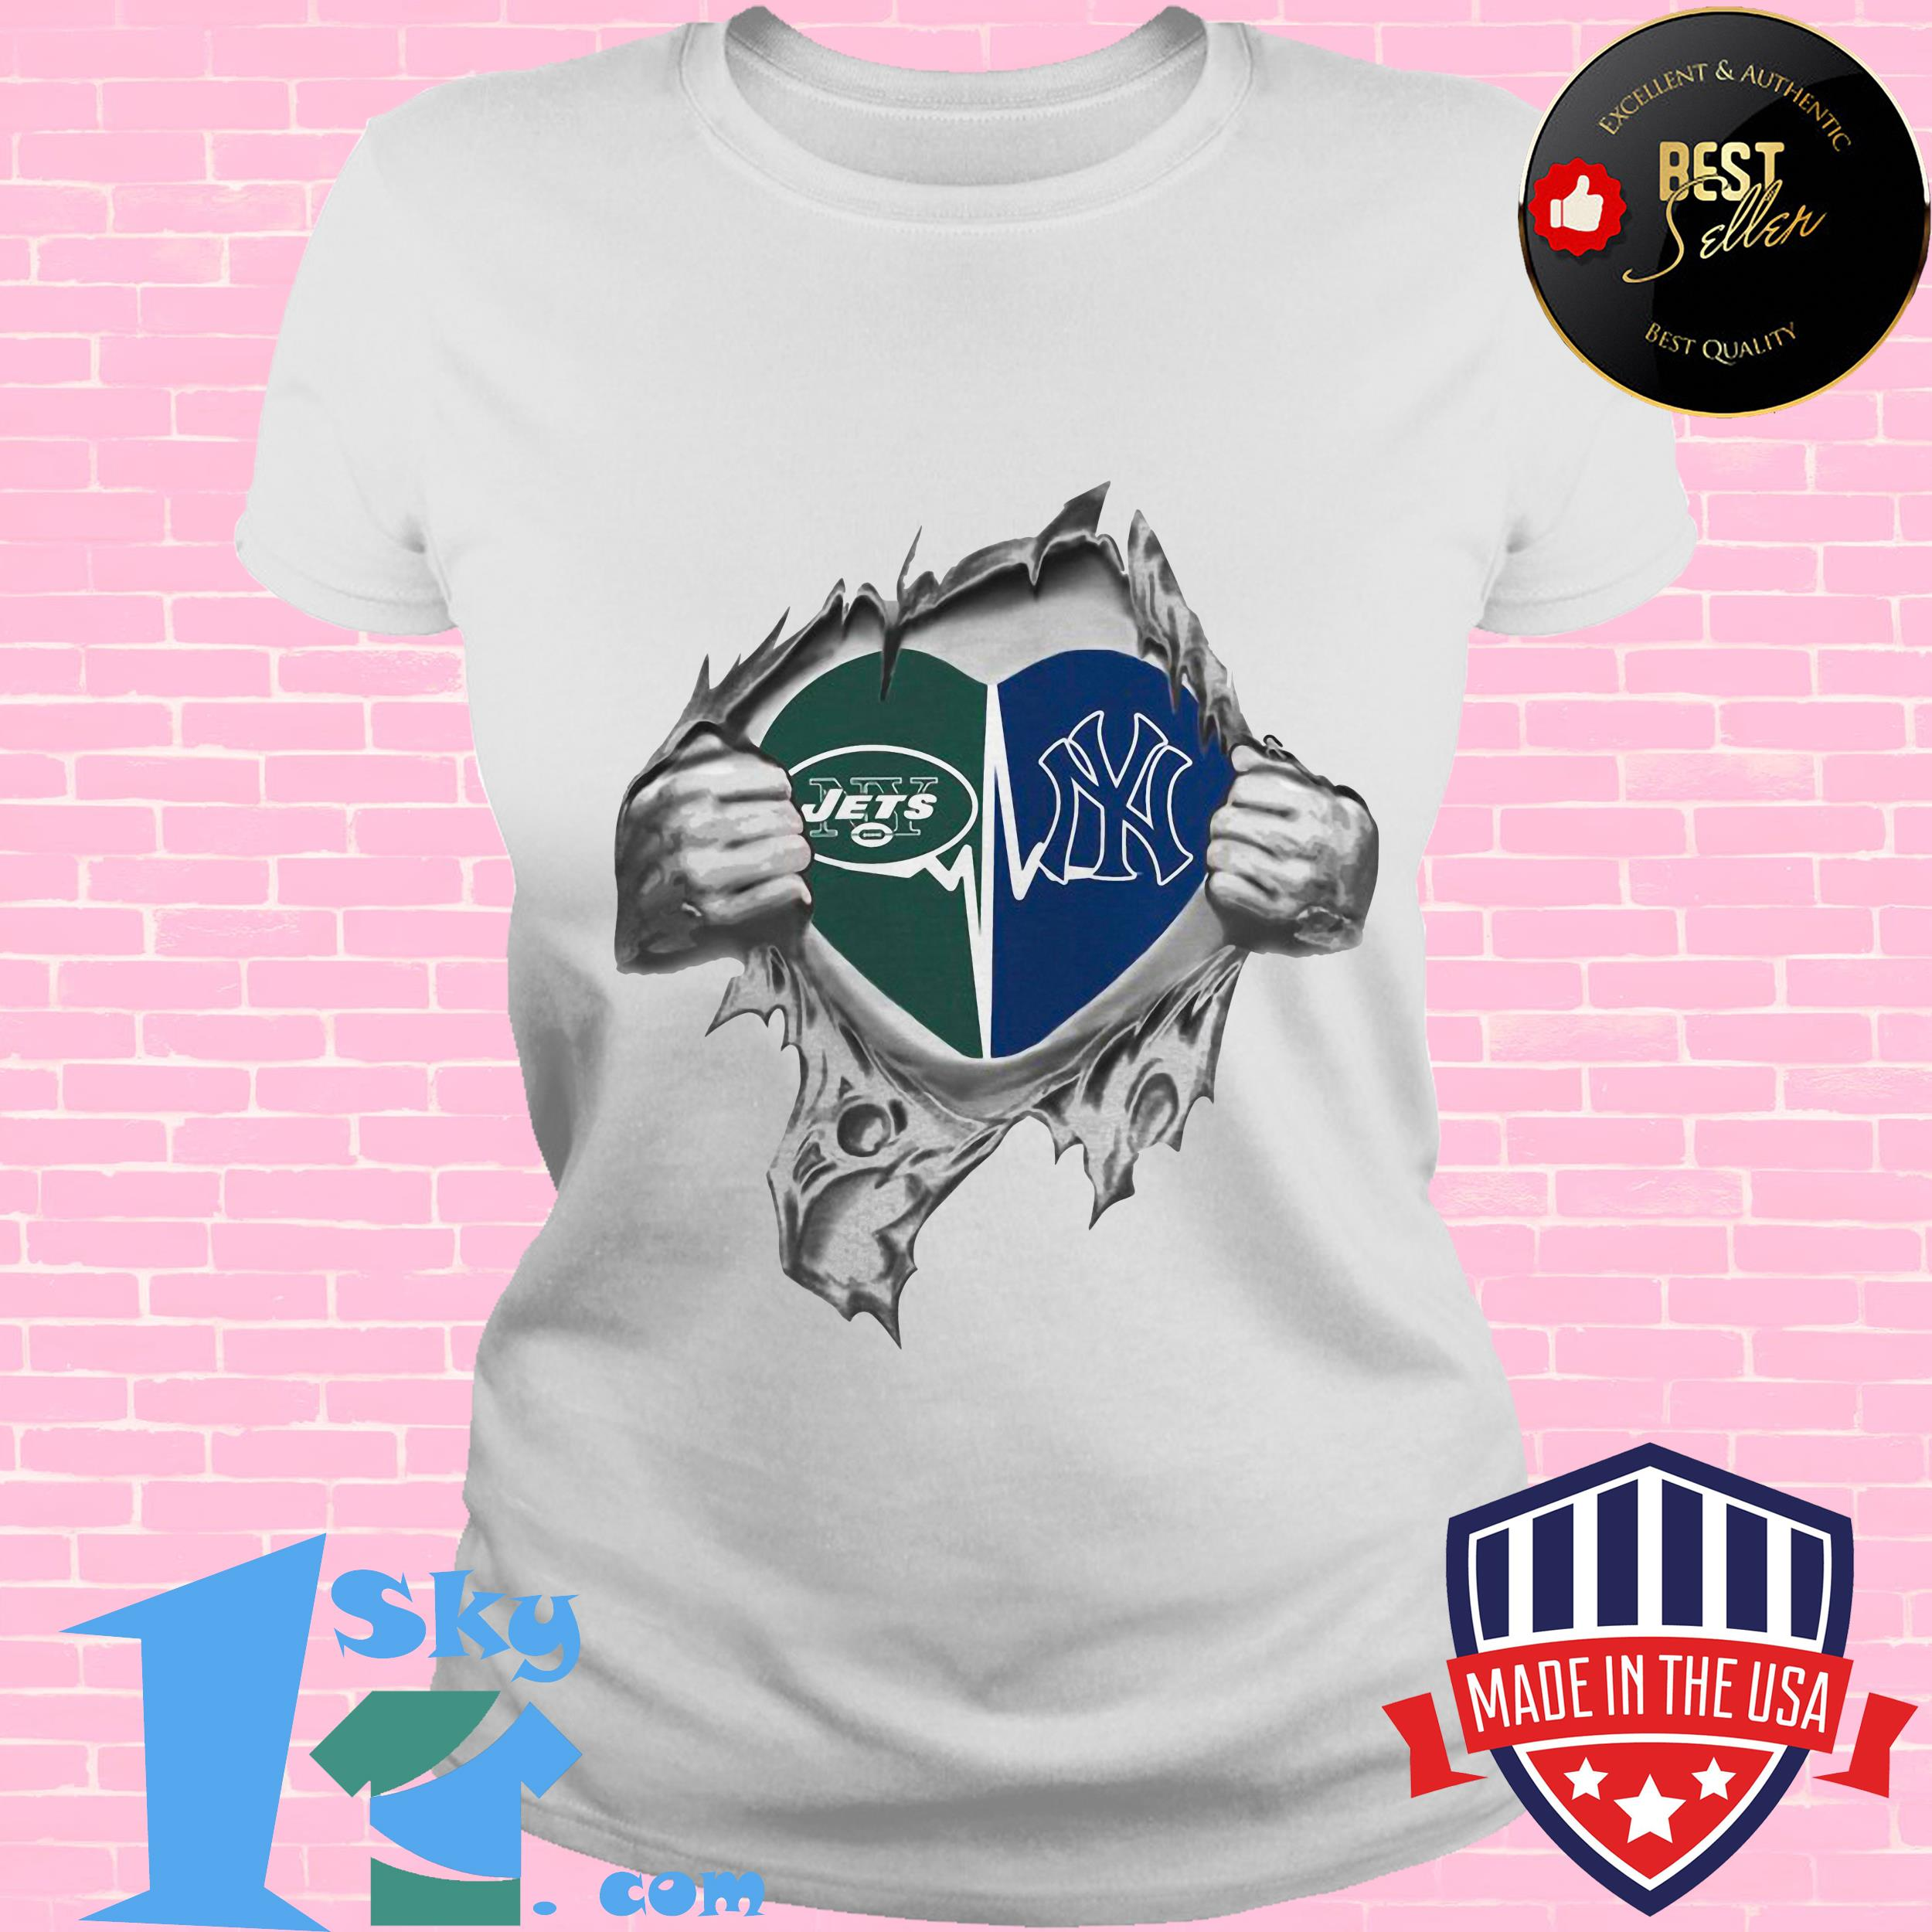 jets yankees its in my heart inside me ladies tee - Jets Yankees It's In My Heart Inside Me shirt